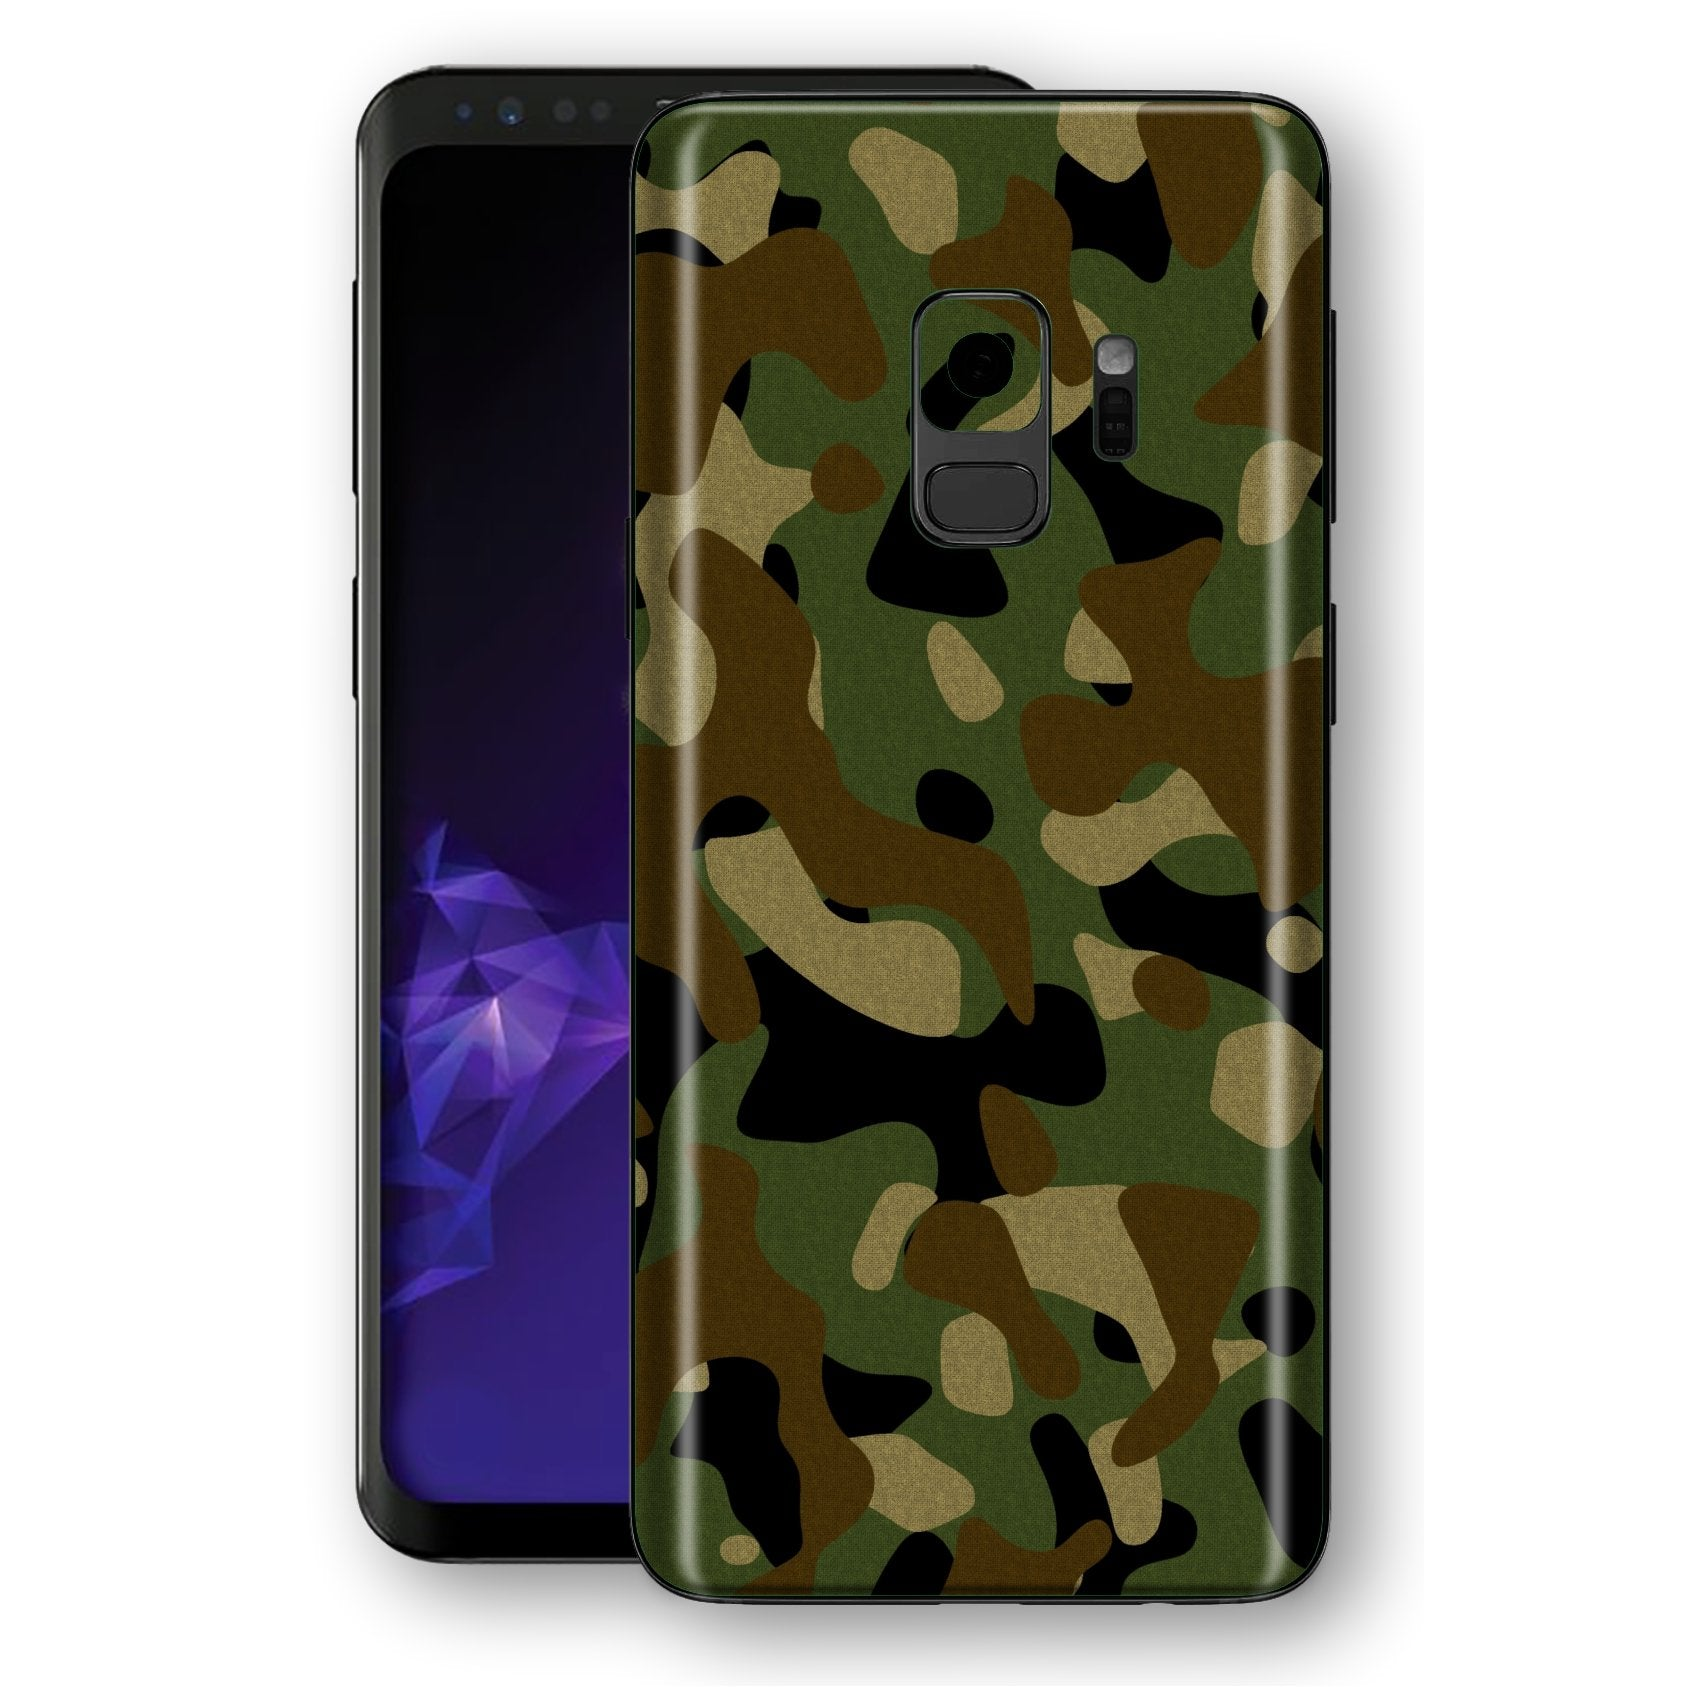 Samsung Galaxy S9 Signature Camouflage Classic Skin, Decal, Wrap, Protector, Cover by EasySkinz | EasySkinz.com